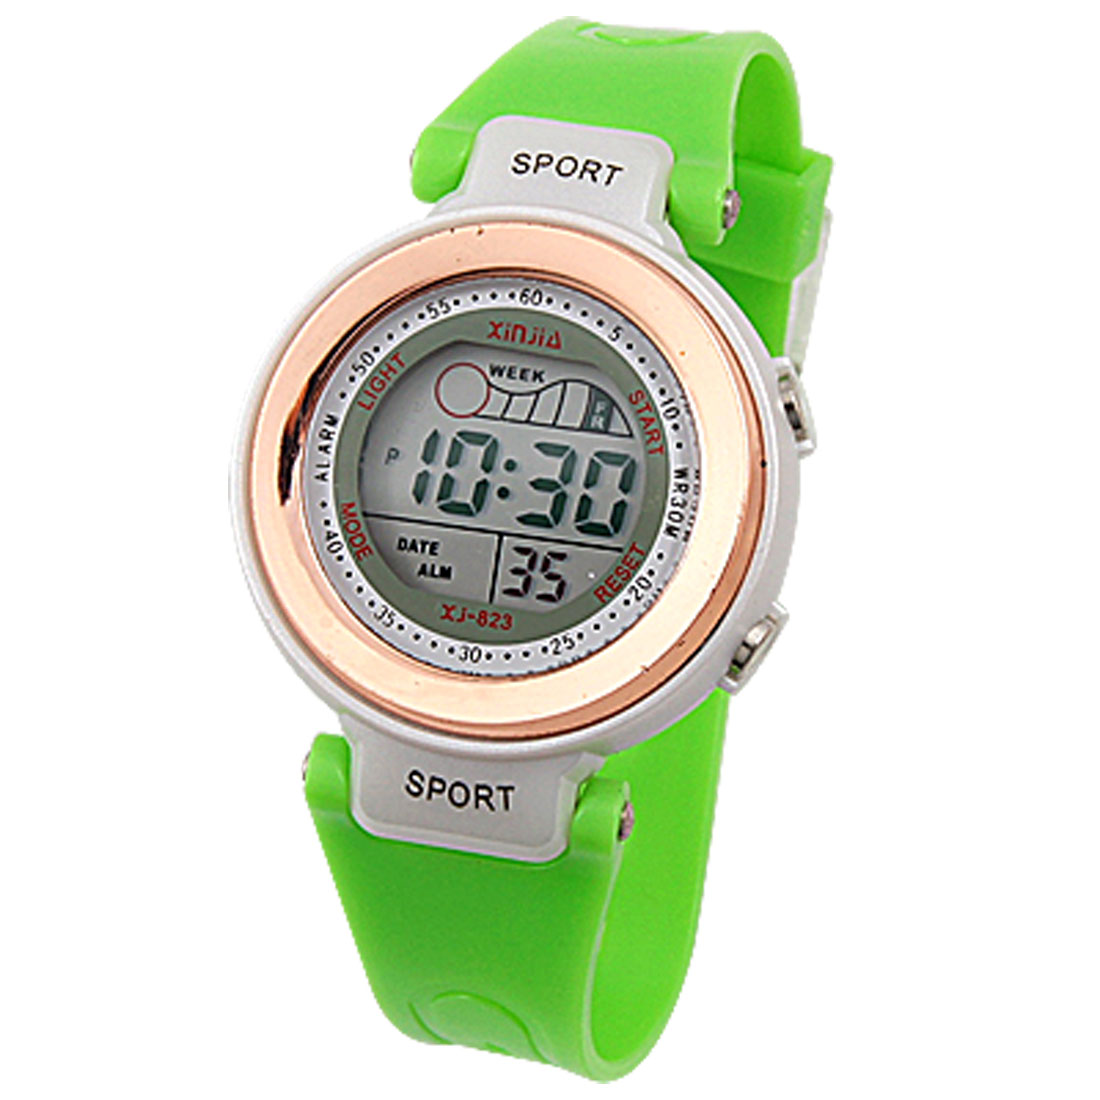 Cold Light LCD Display Green Band Wristwatch Sports Digital Watch